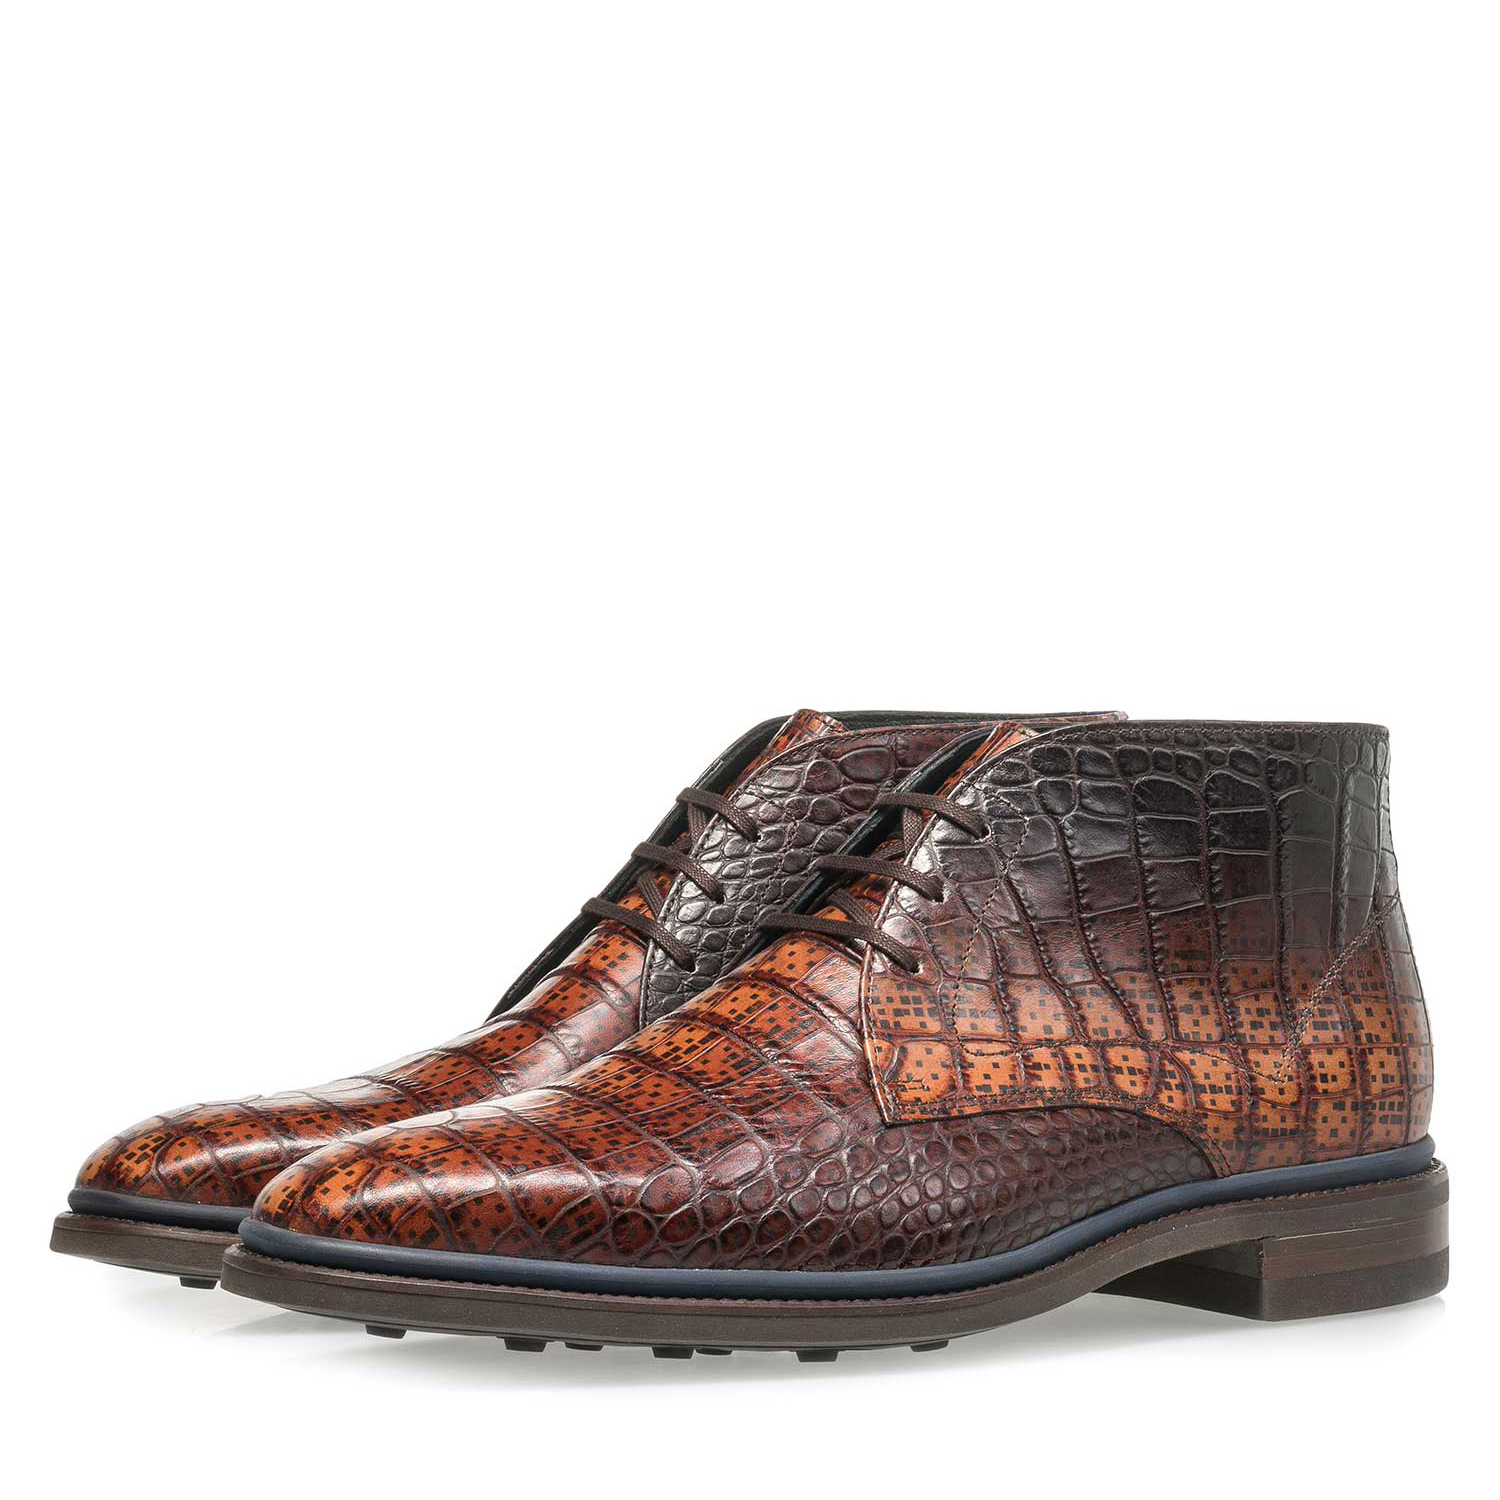 10623/01 - Premium cognac-coloured croco leather lace shoe